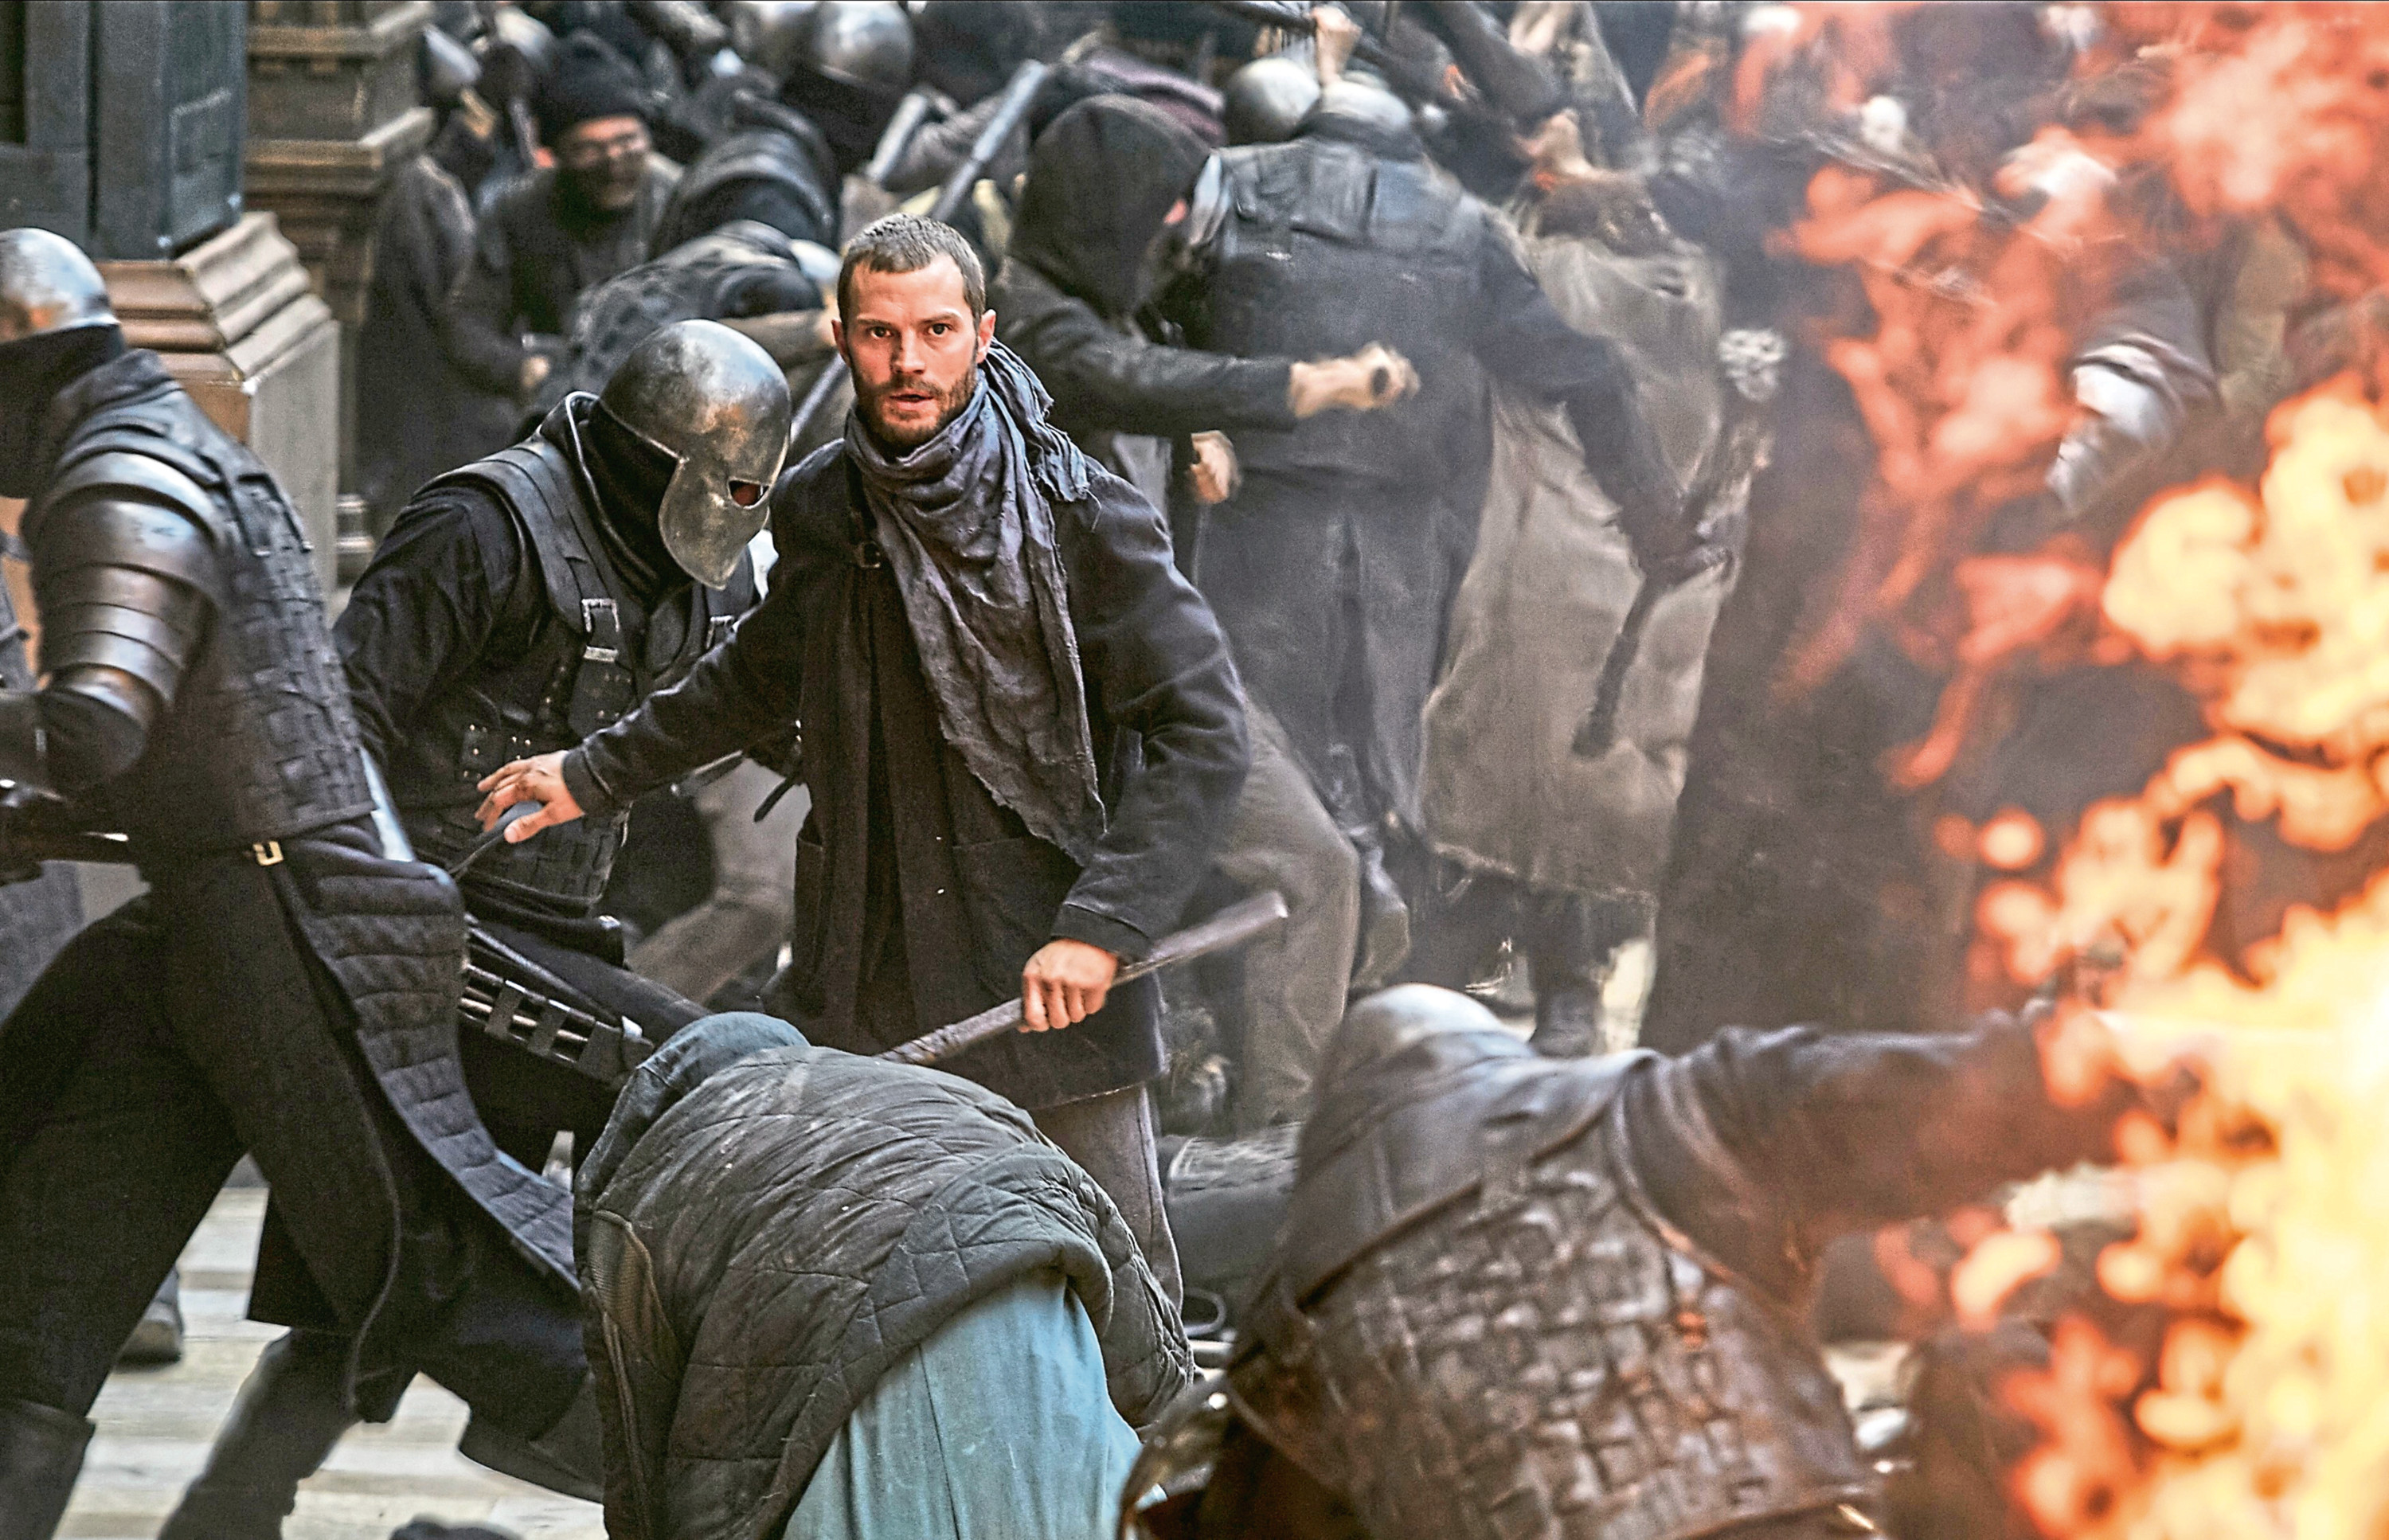 Jamie Dornan as Will Scarlet in a fight scene from the latest movie version of Robin Hood